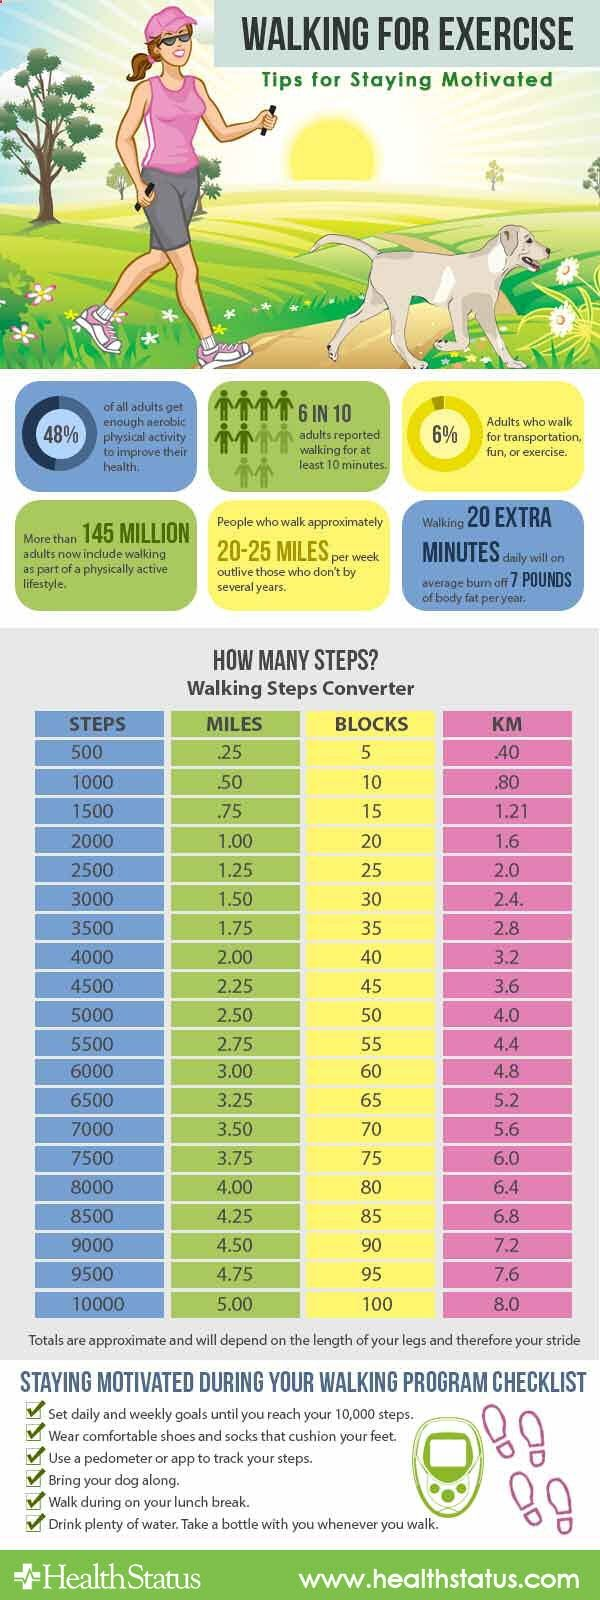 ... a Day - Step counters do that, but they don't measure distance, this  table can help you equate distance with steps. To find out how many calories  you ...